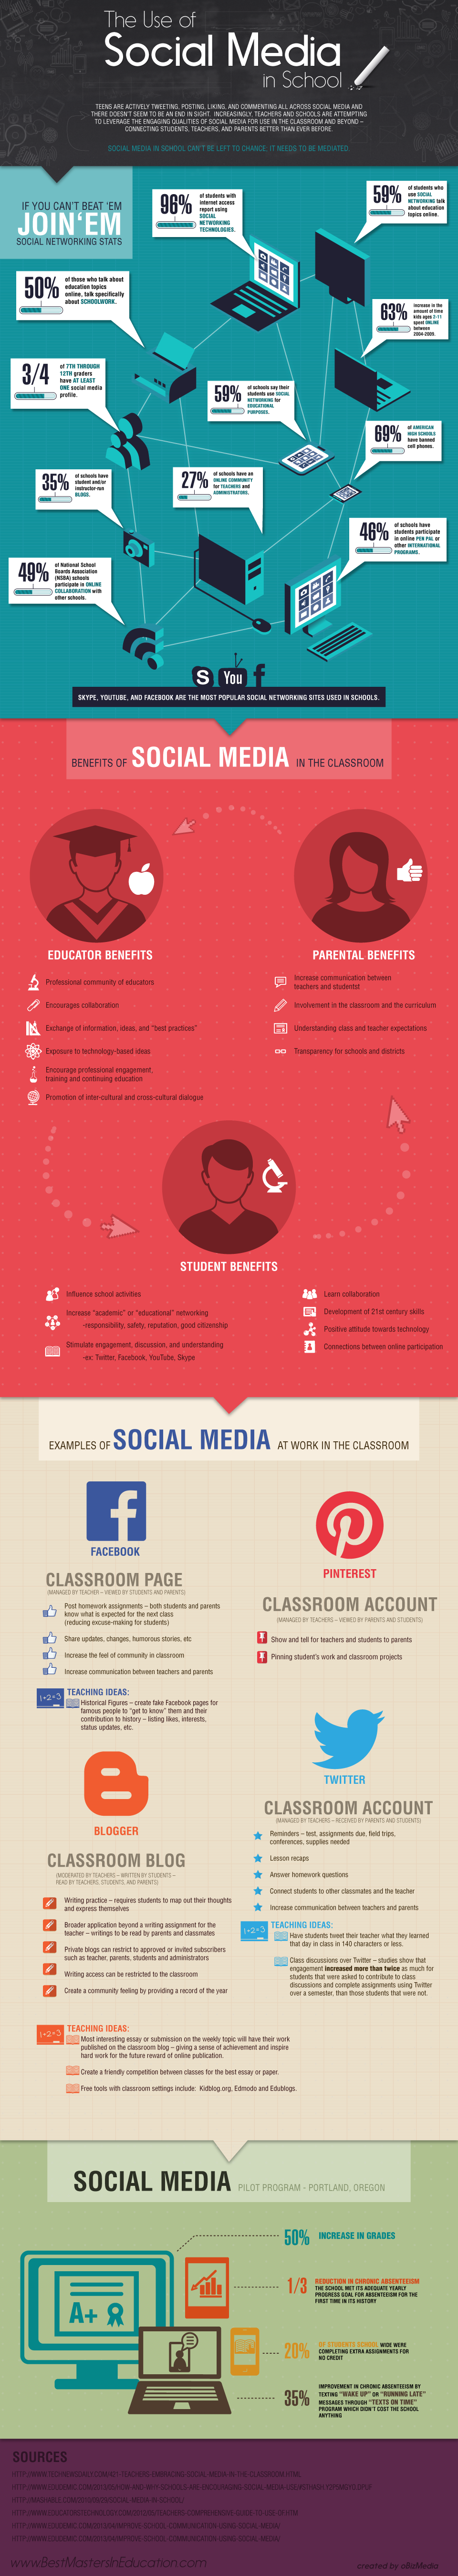 social media has shown to be beneficial to esl students